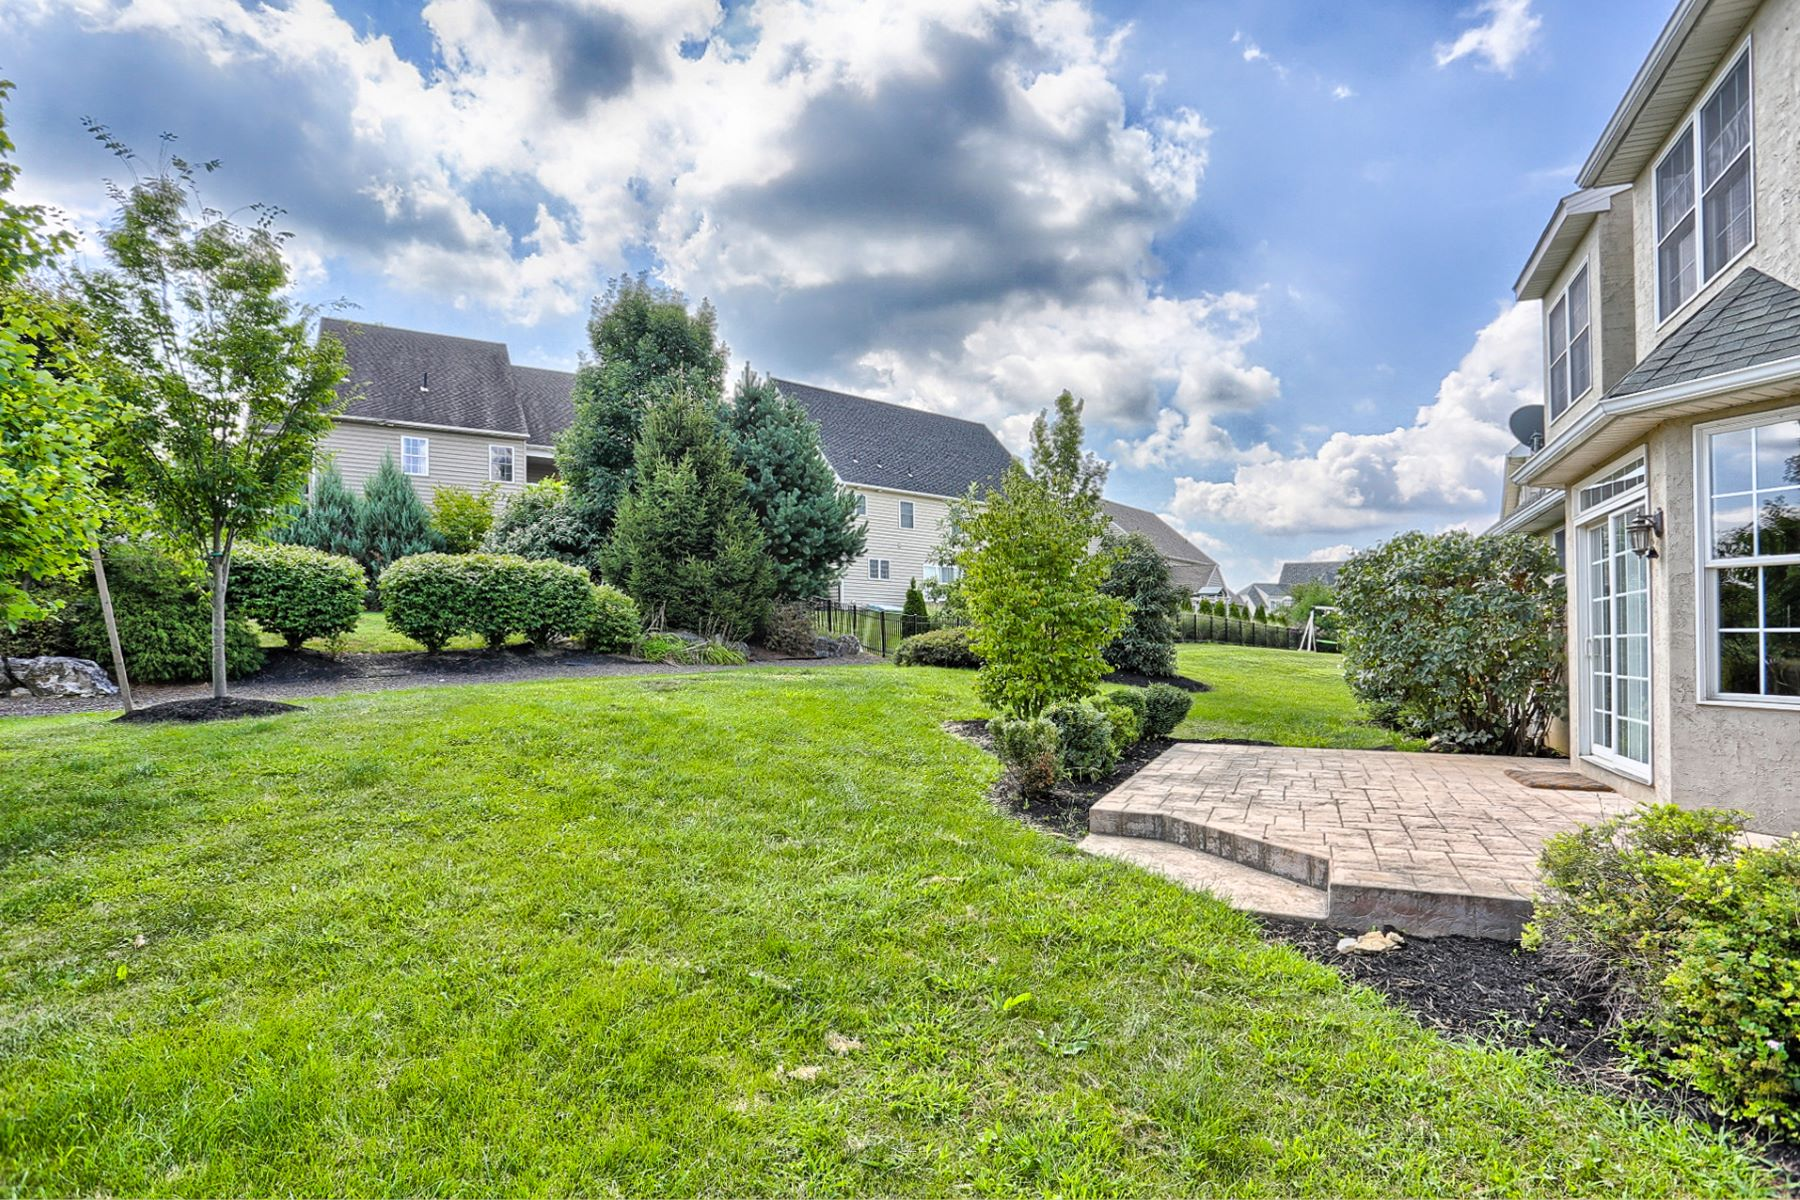 Additional photo for property listing at 344 Royal Hunt Way  Lititz, Pennsylvania 17543 United States